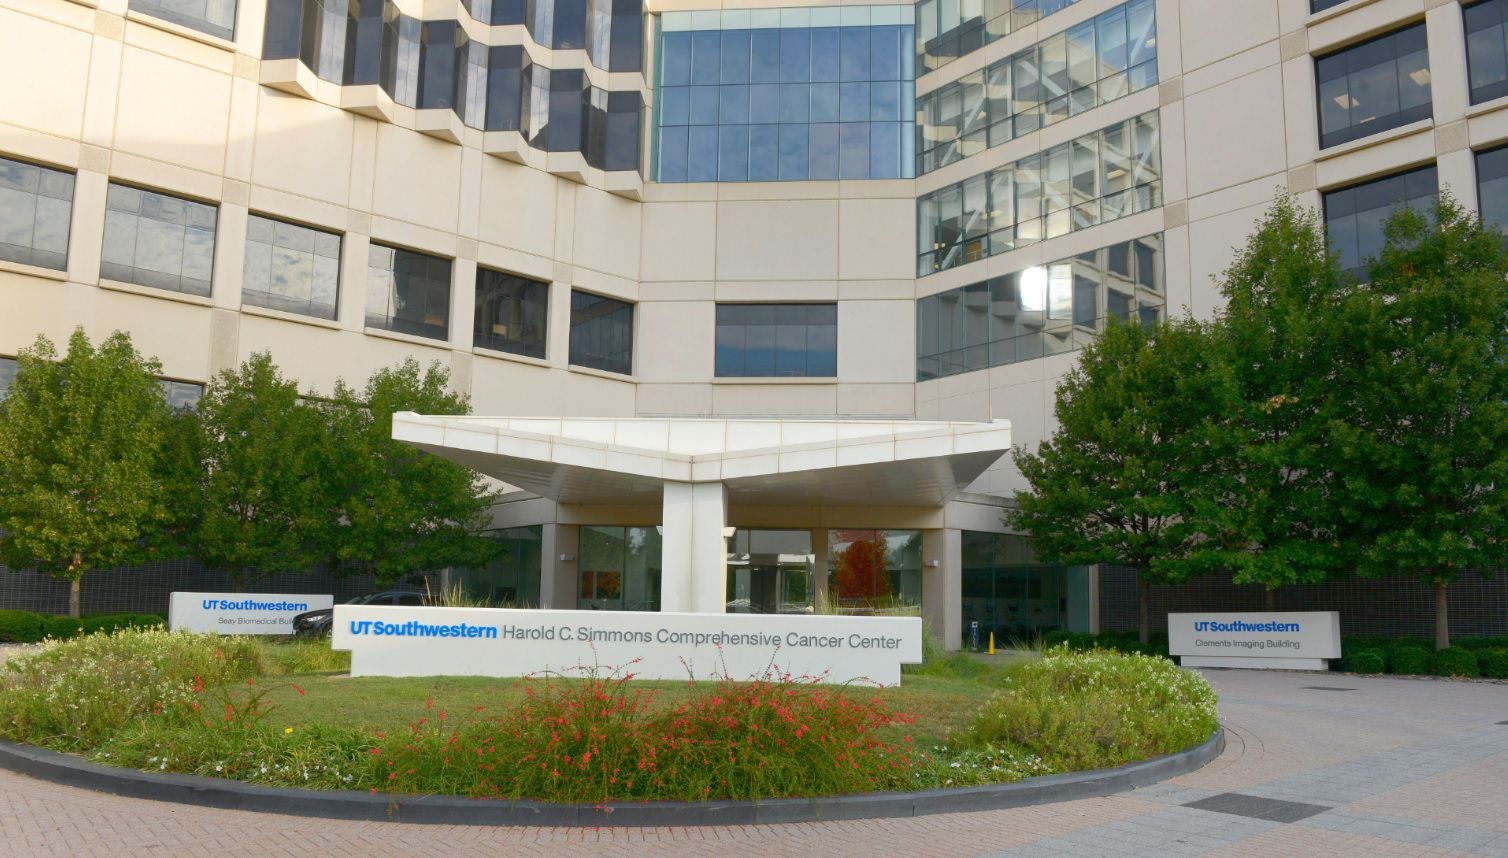 UT Southwestern's Harold C. Simmons Comprehensive Cancer Center